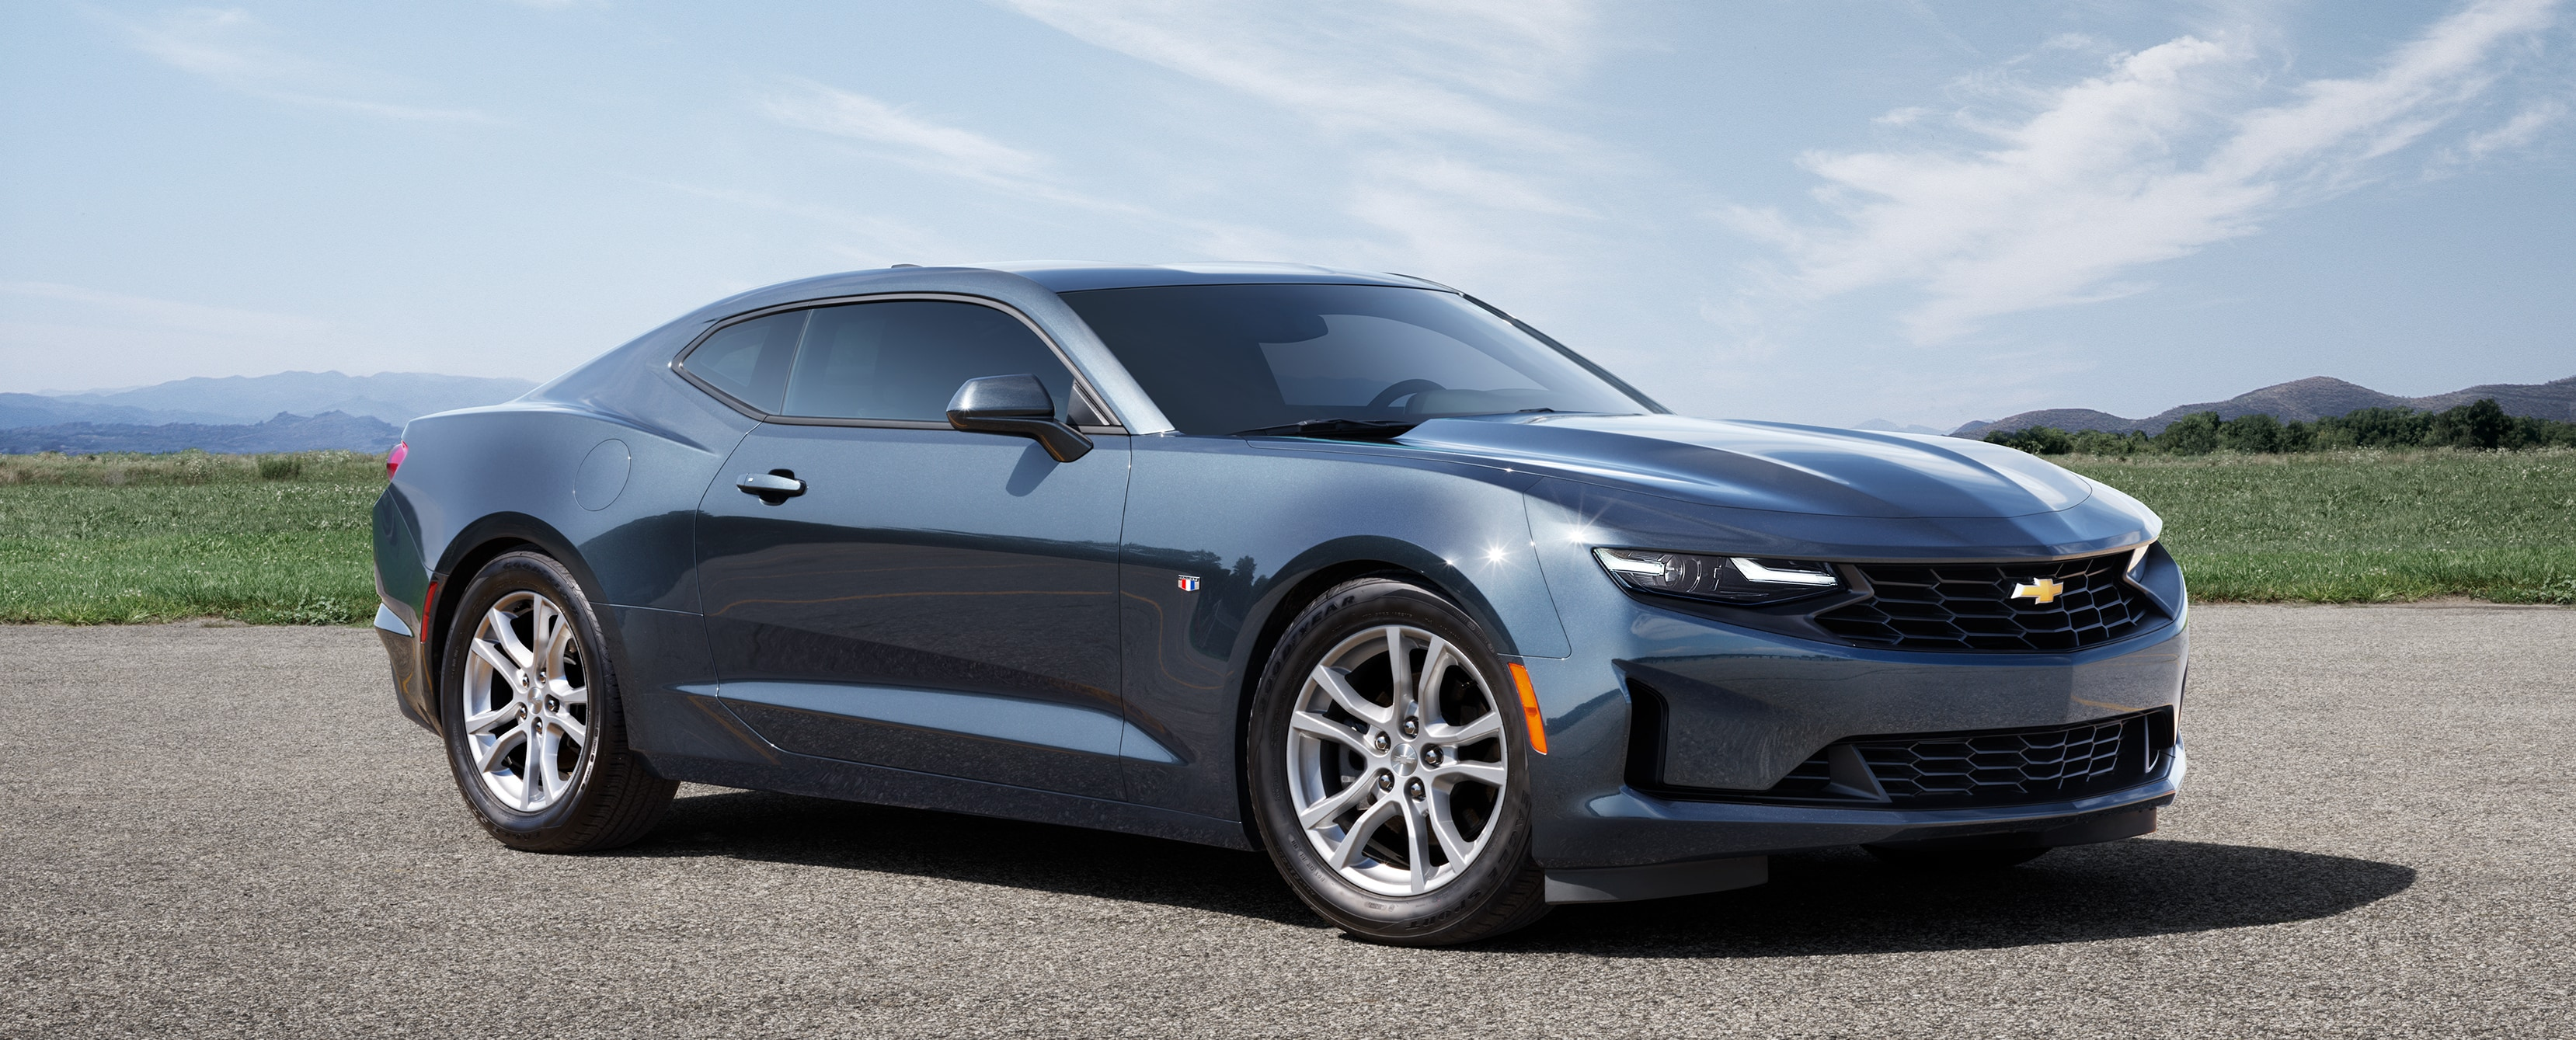 Research the Chevrolet Camaro For Sale | Greenville Chevrolet